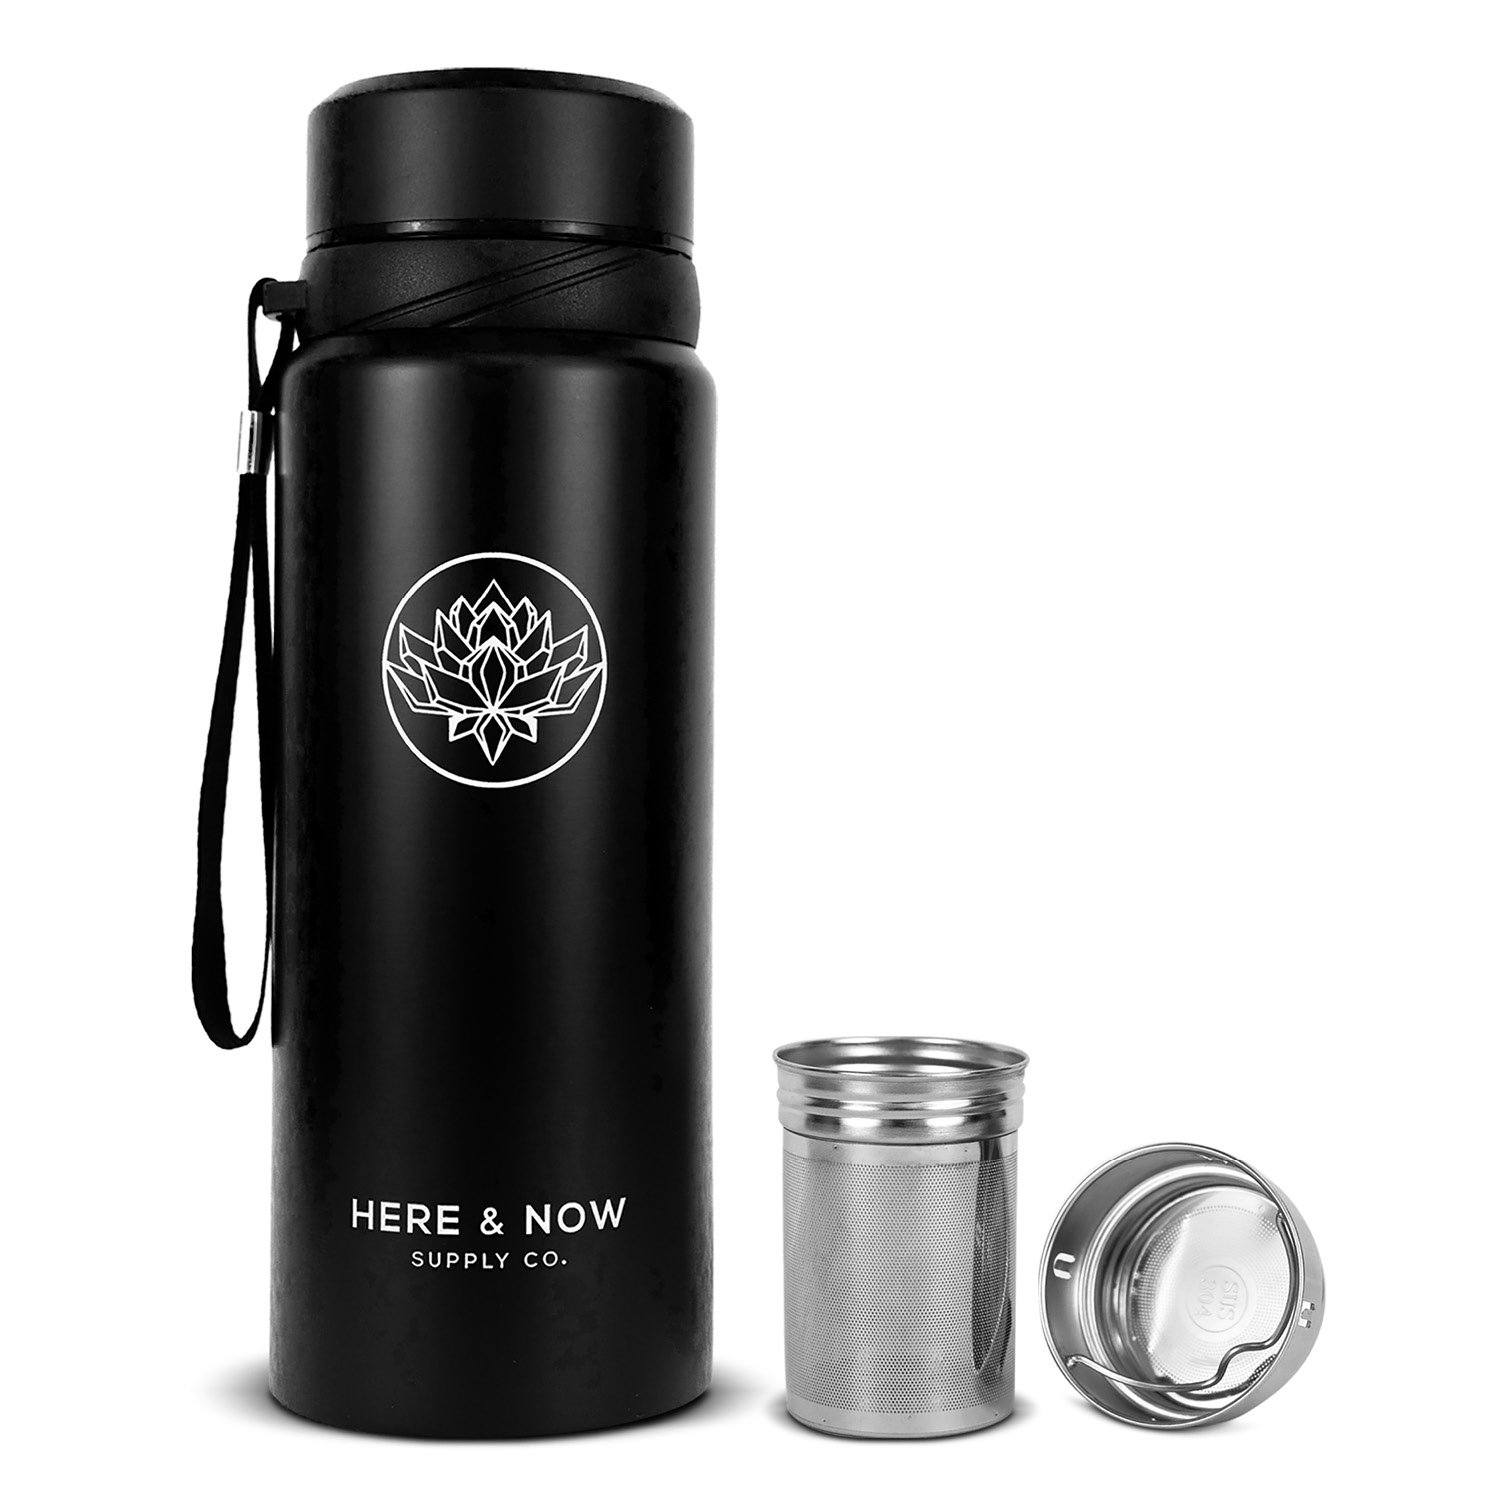 Nova - 25 oz Infuser Bottle Infuser Bottle Here & Now Supply Co. Zen Black #color_zen-black